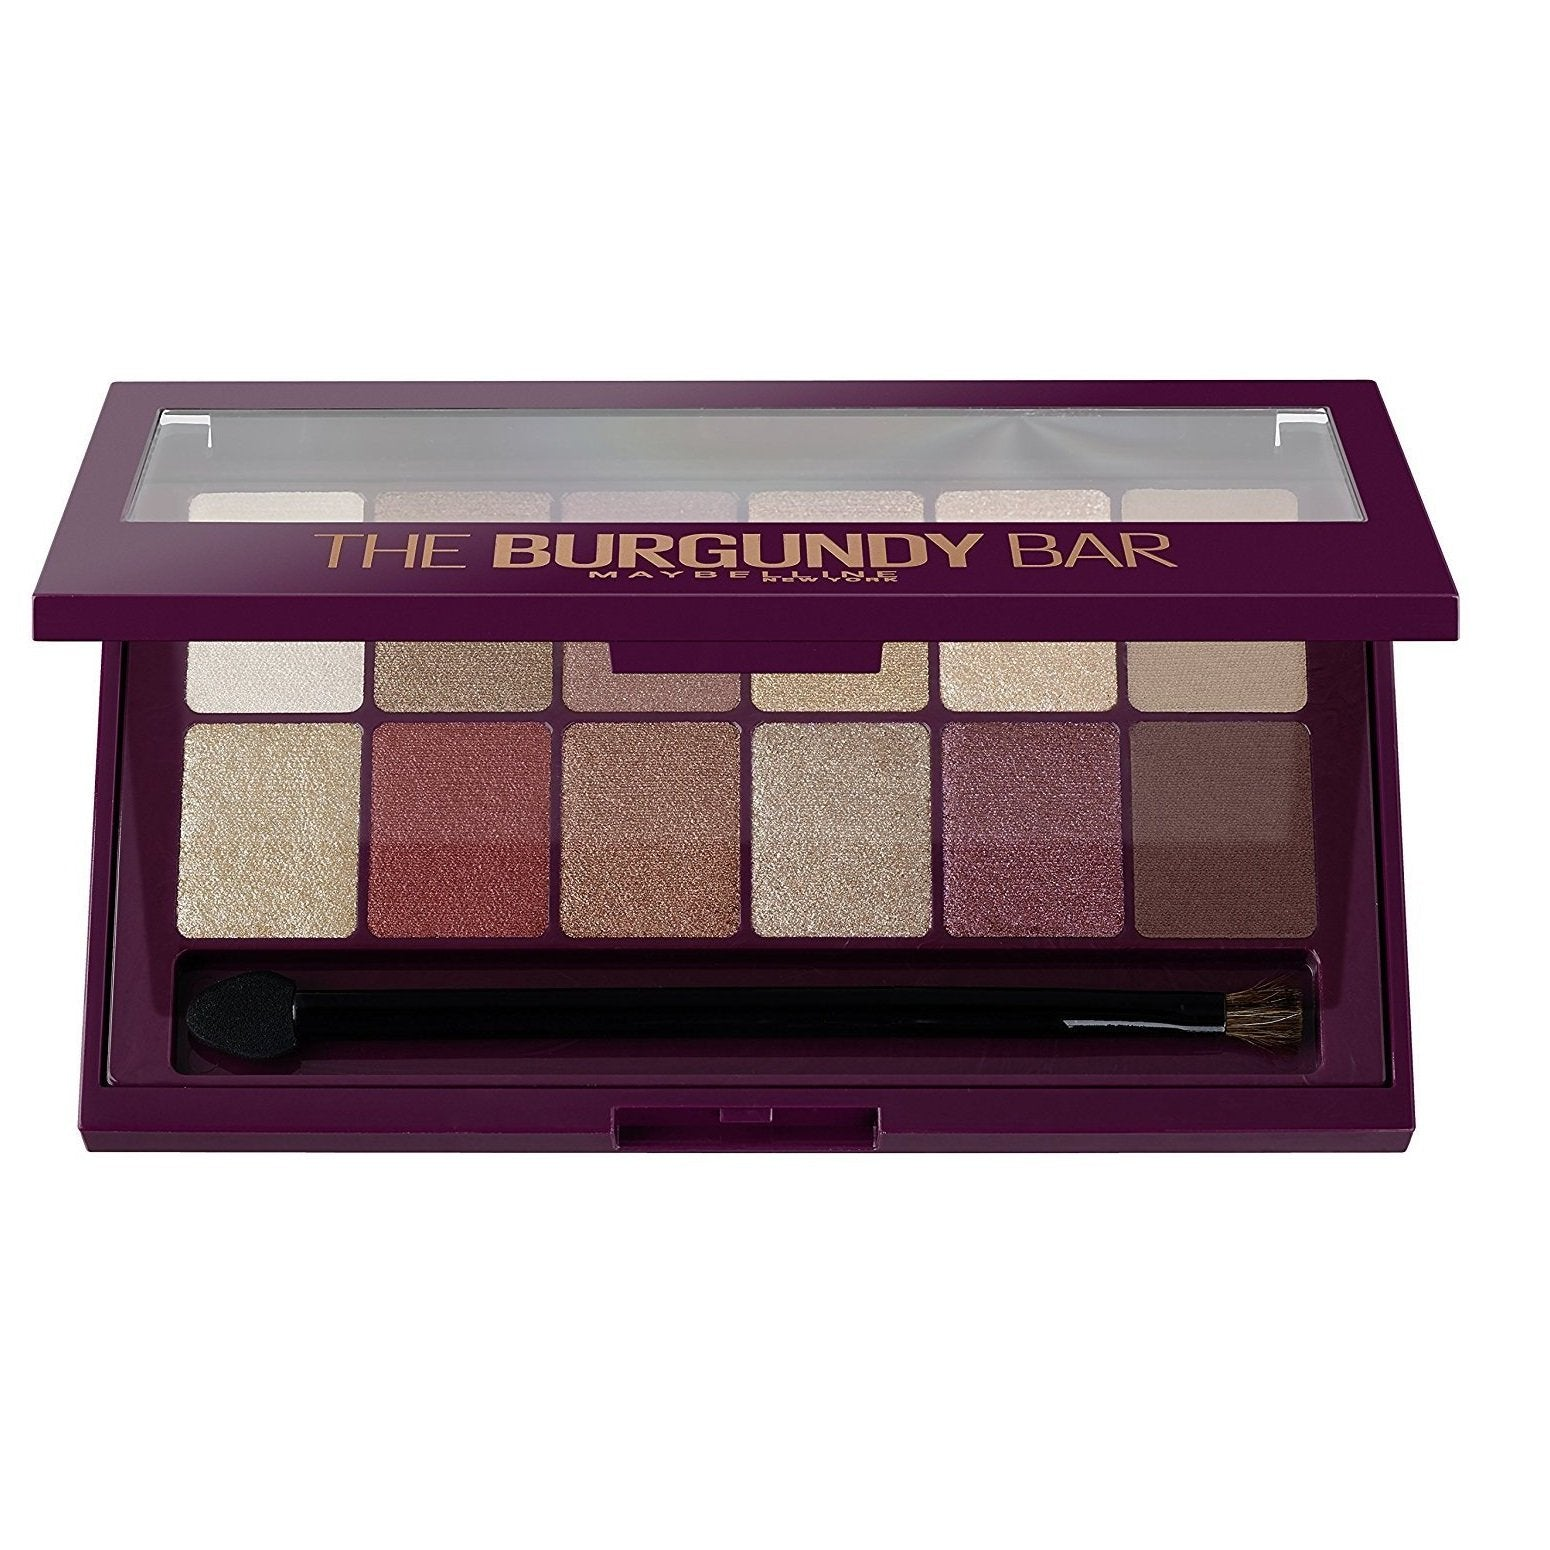 a6b3978182d MAYBELLINE The Burgundy Bar Eyeshadow Palette – LA FEMME BEAUTY